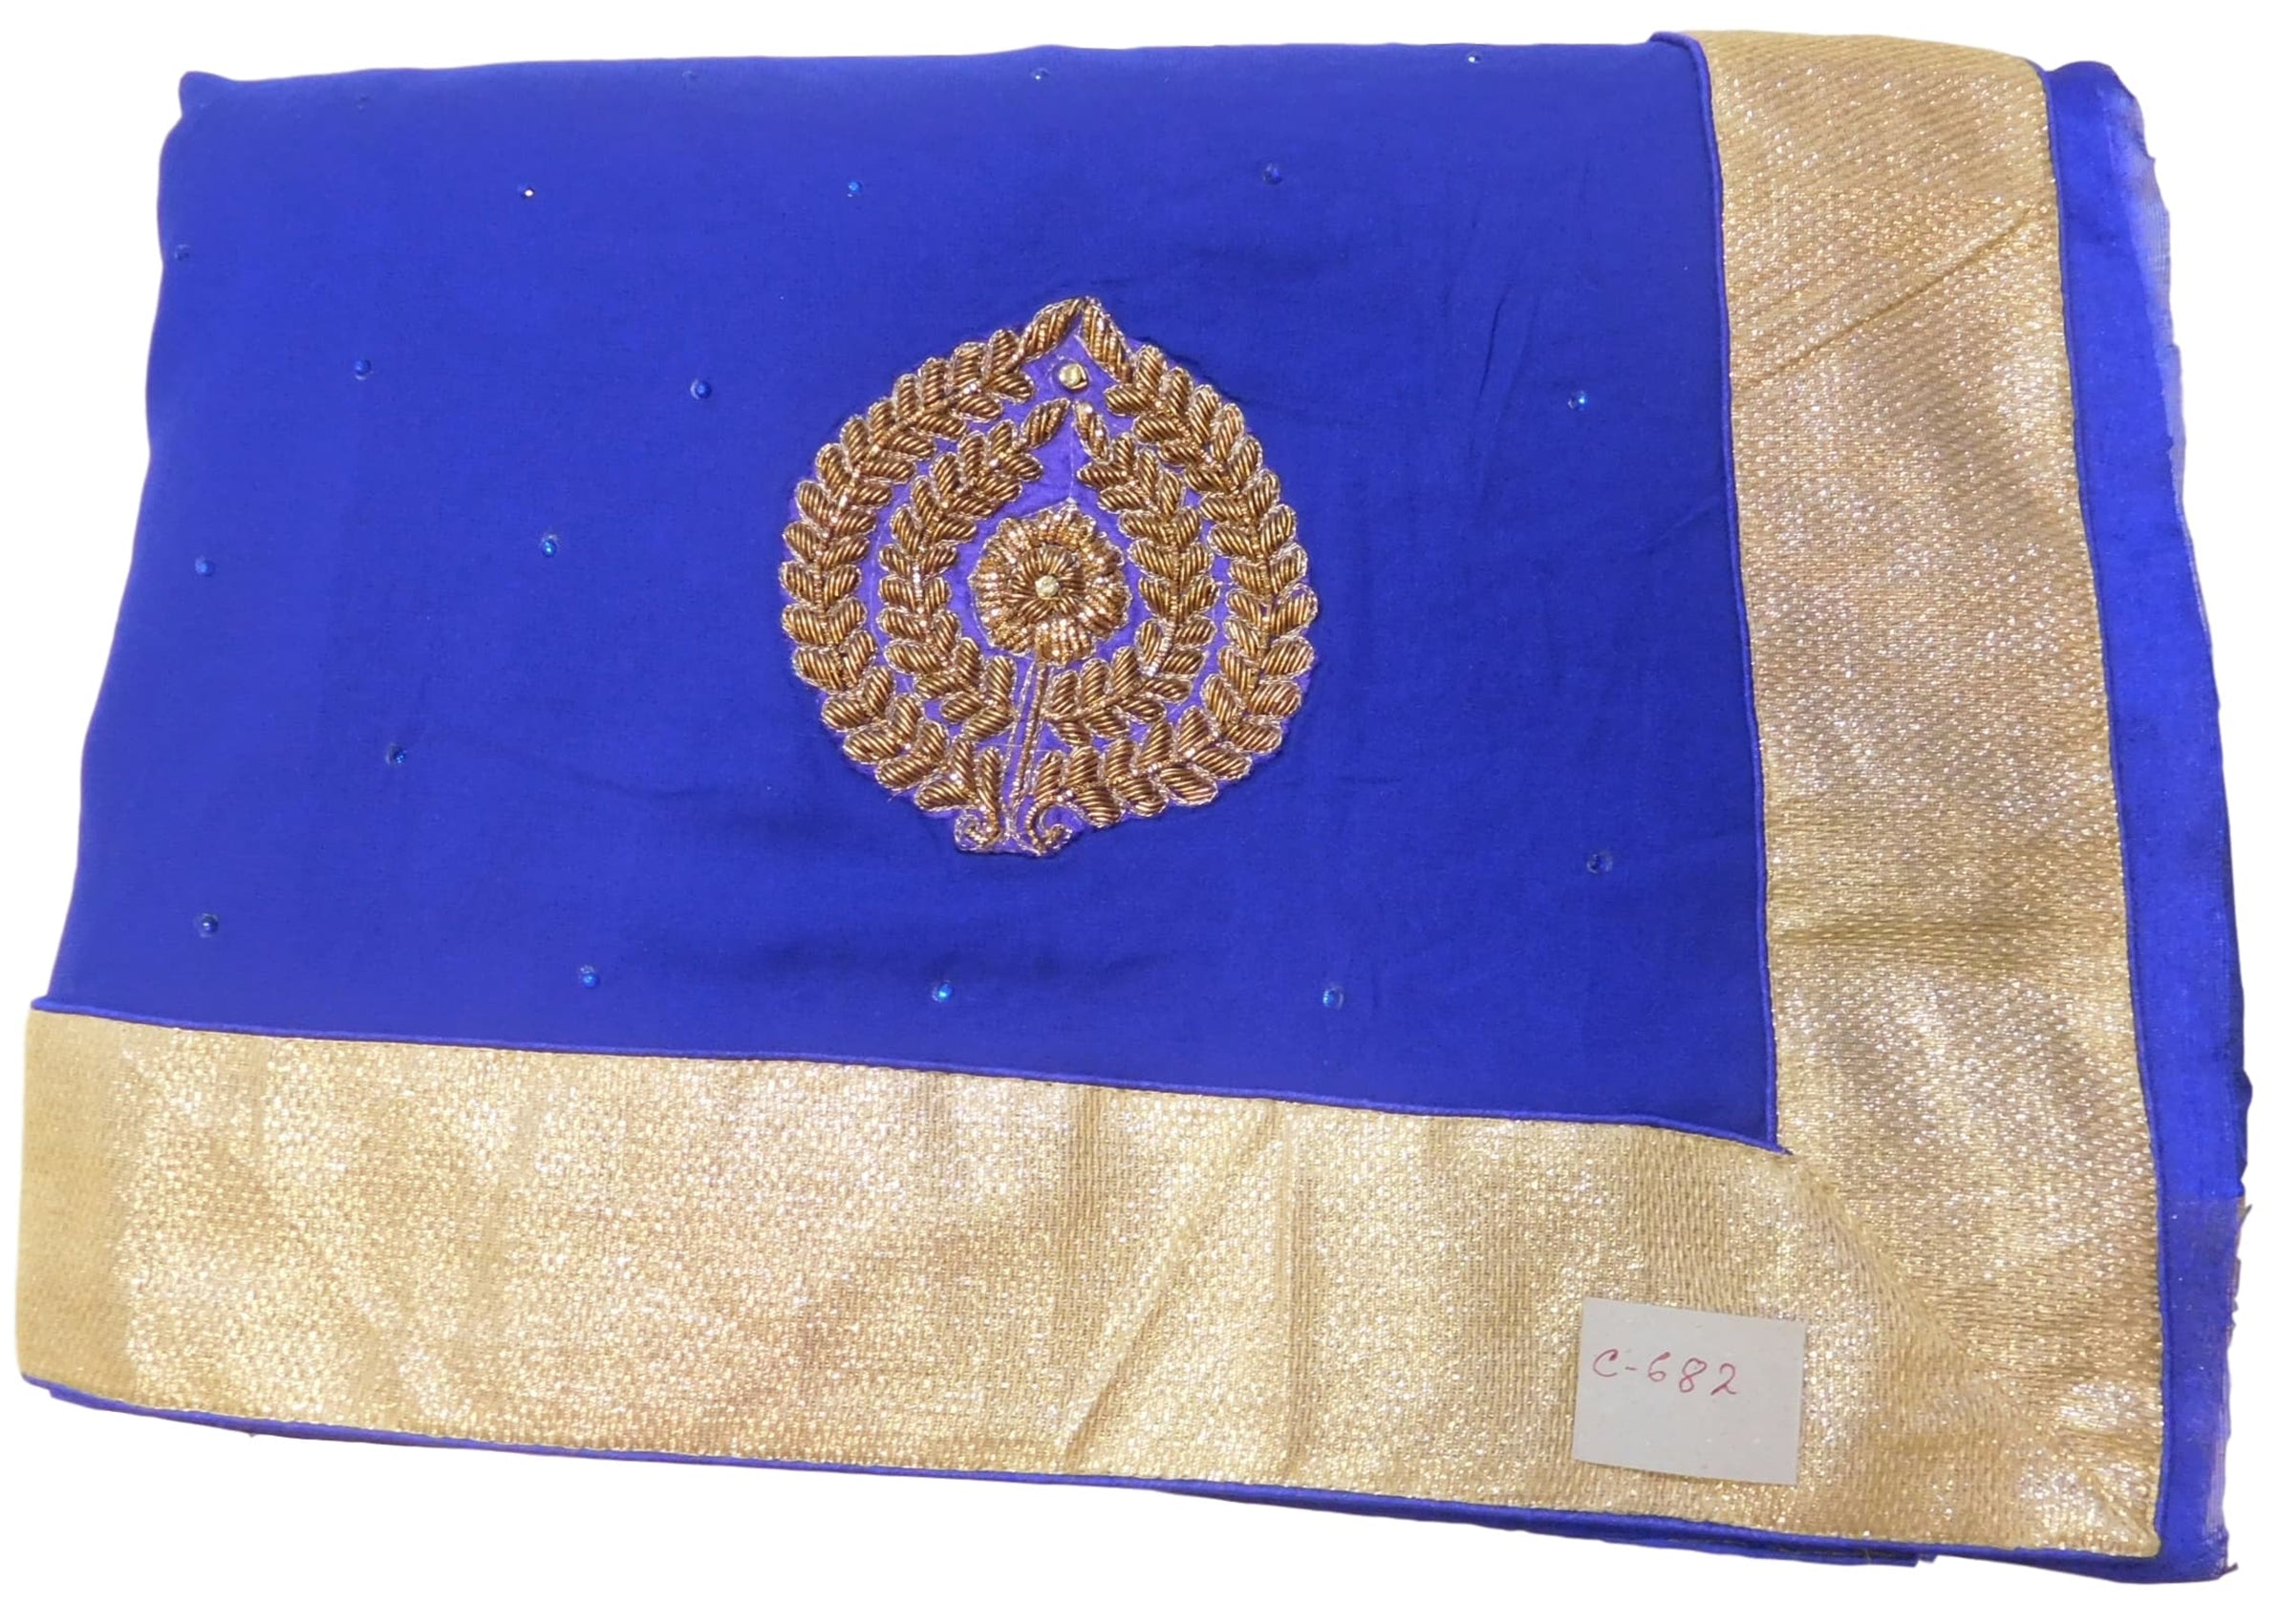 Blue Designer Georgette (Viscos) Hand Embroidery Bullion Zari Stone Work Saree Sari